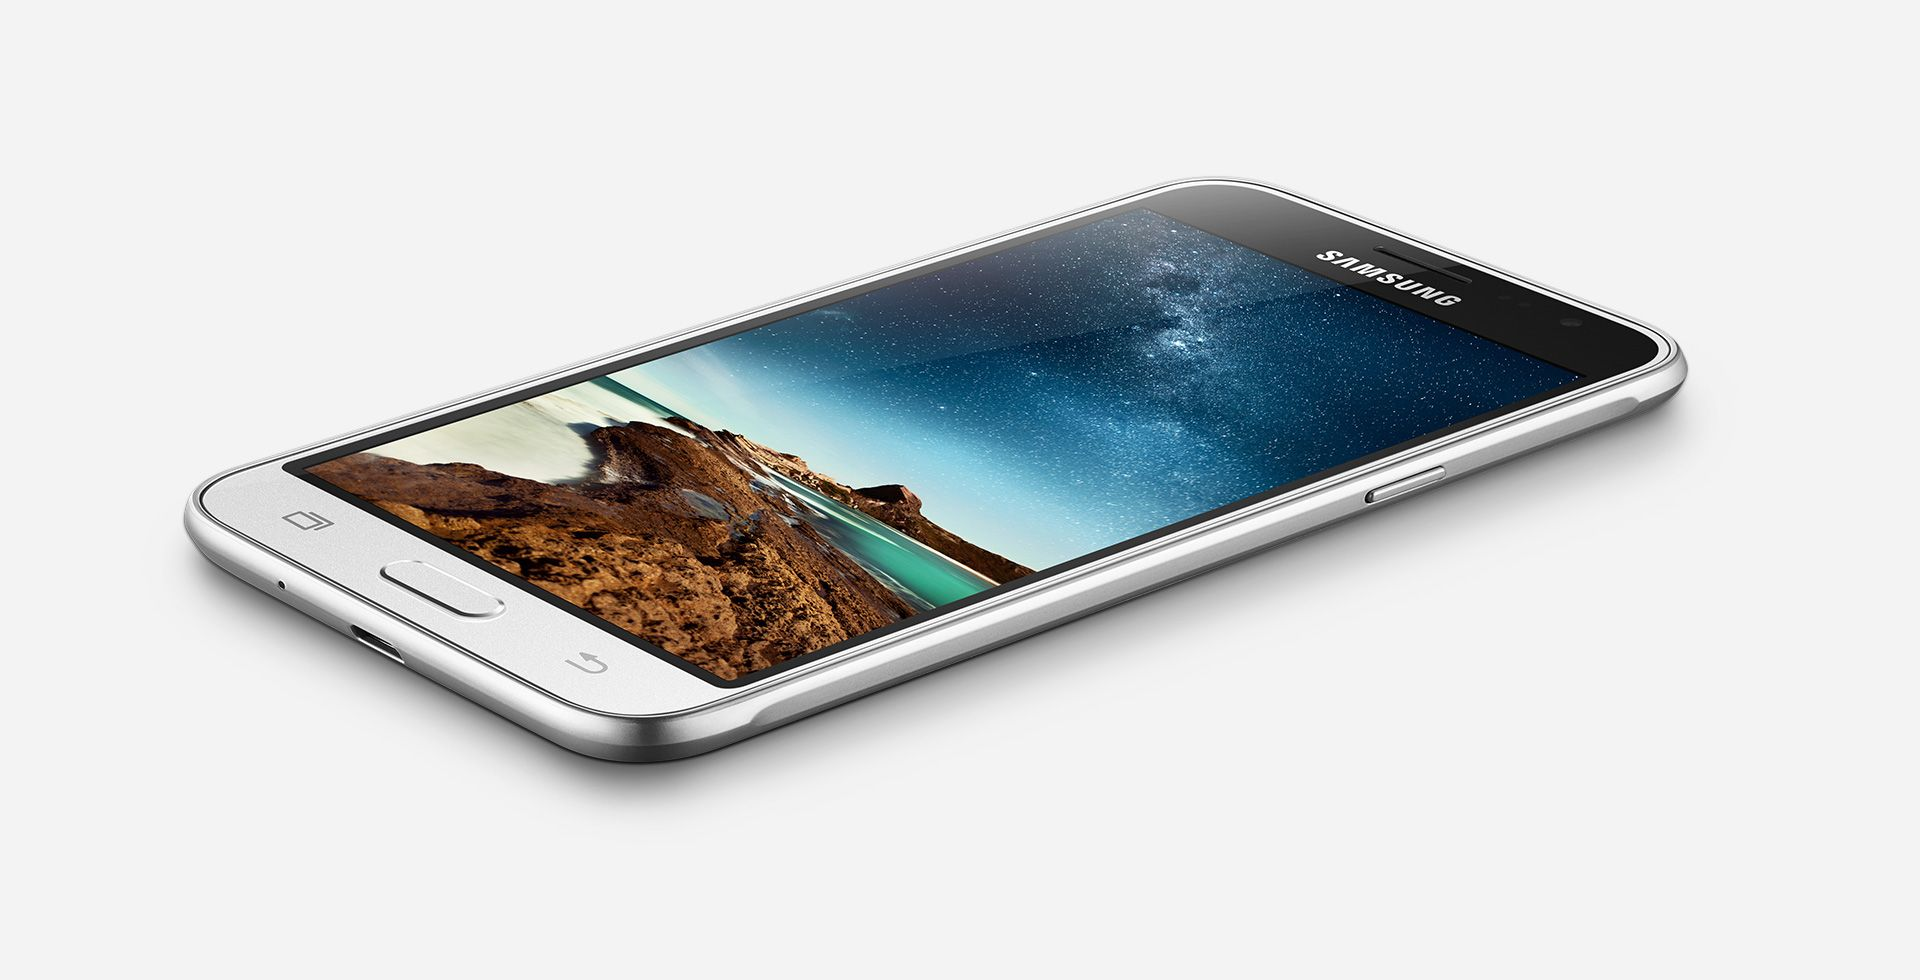 Samsung Galaxy J3⑥ goes official in China, is very similar to the Galaxy J5